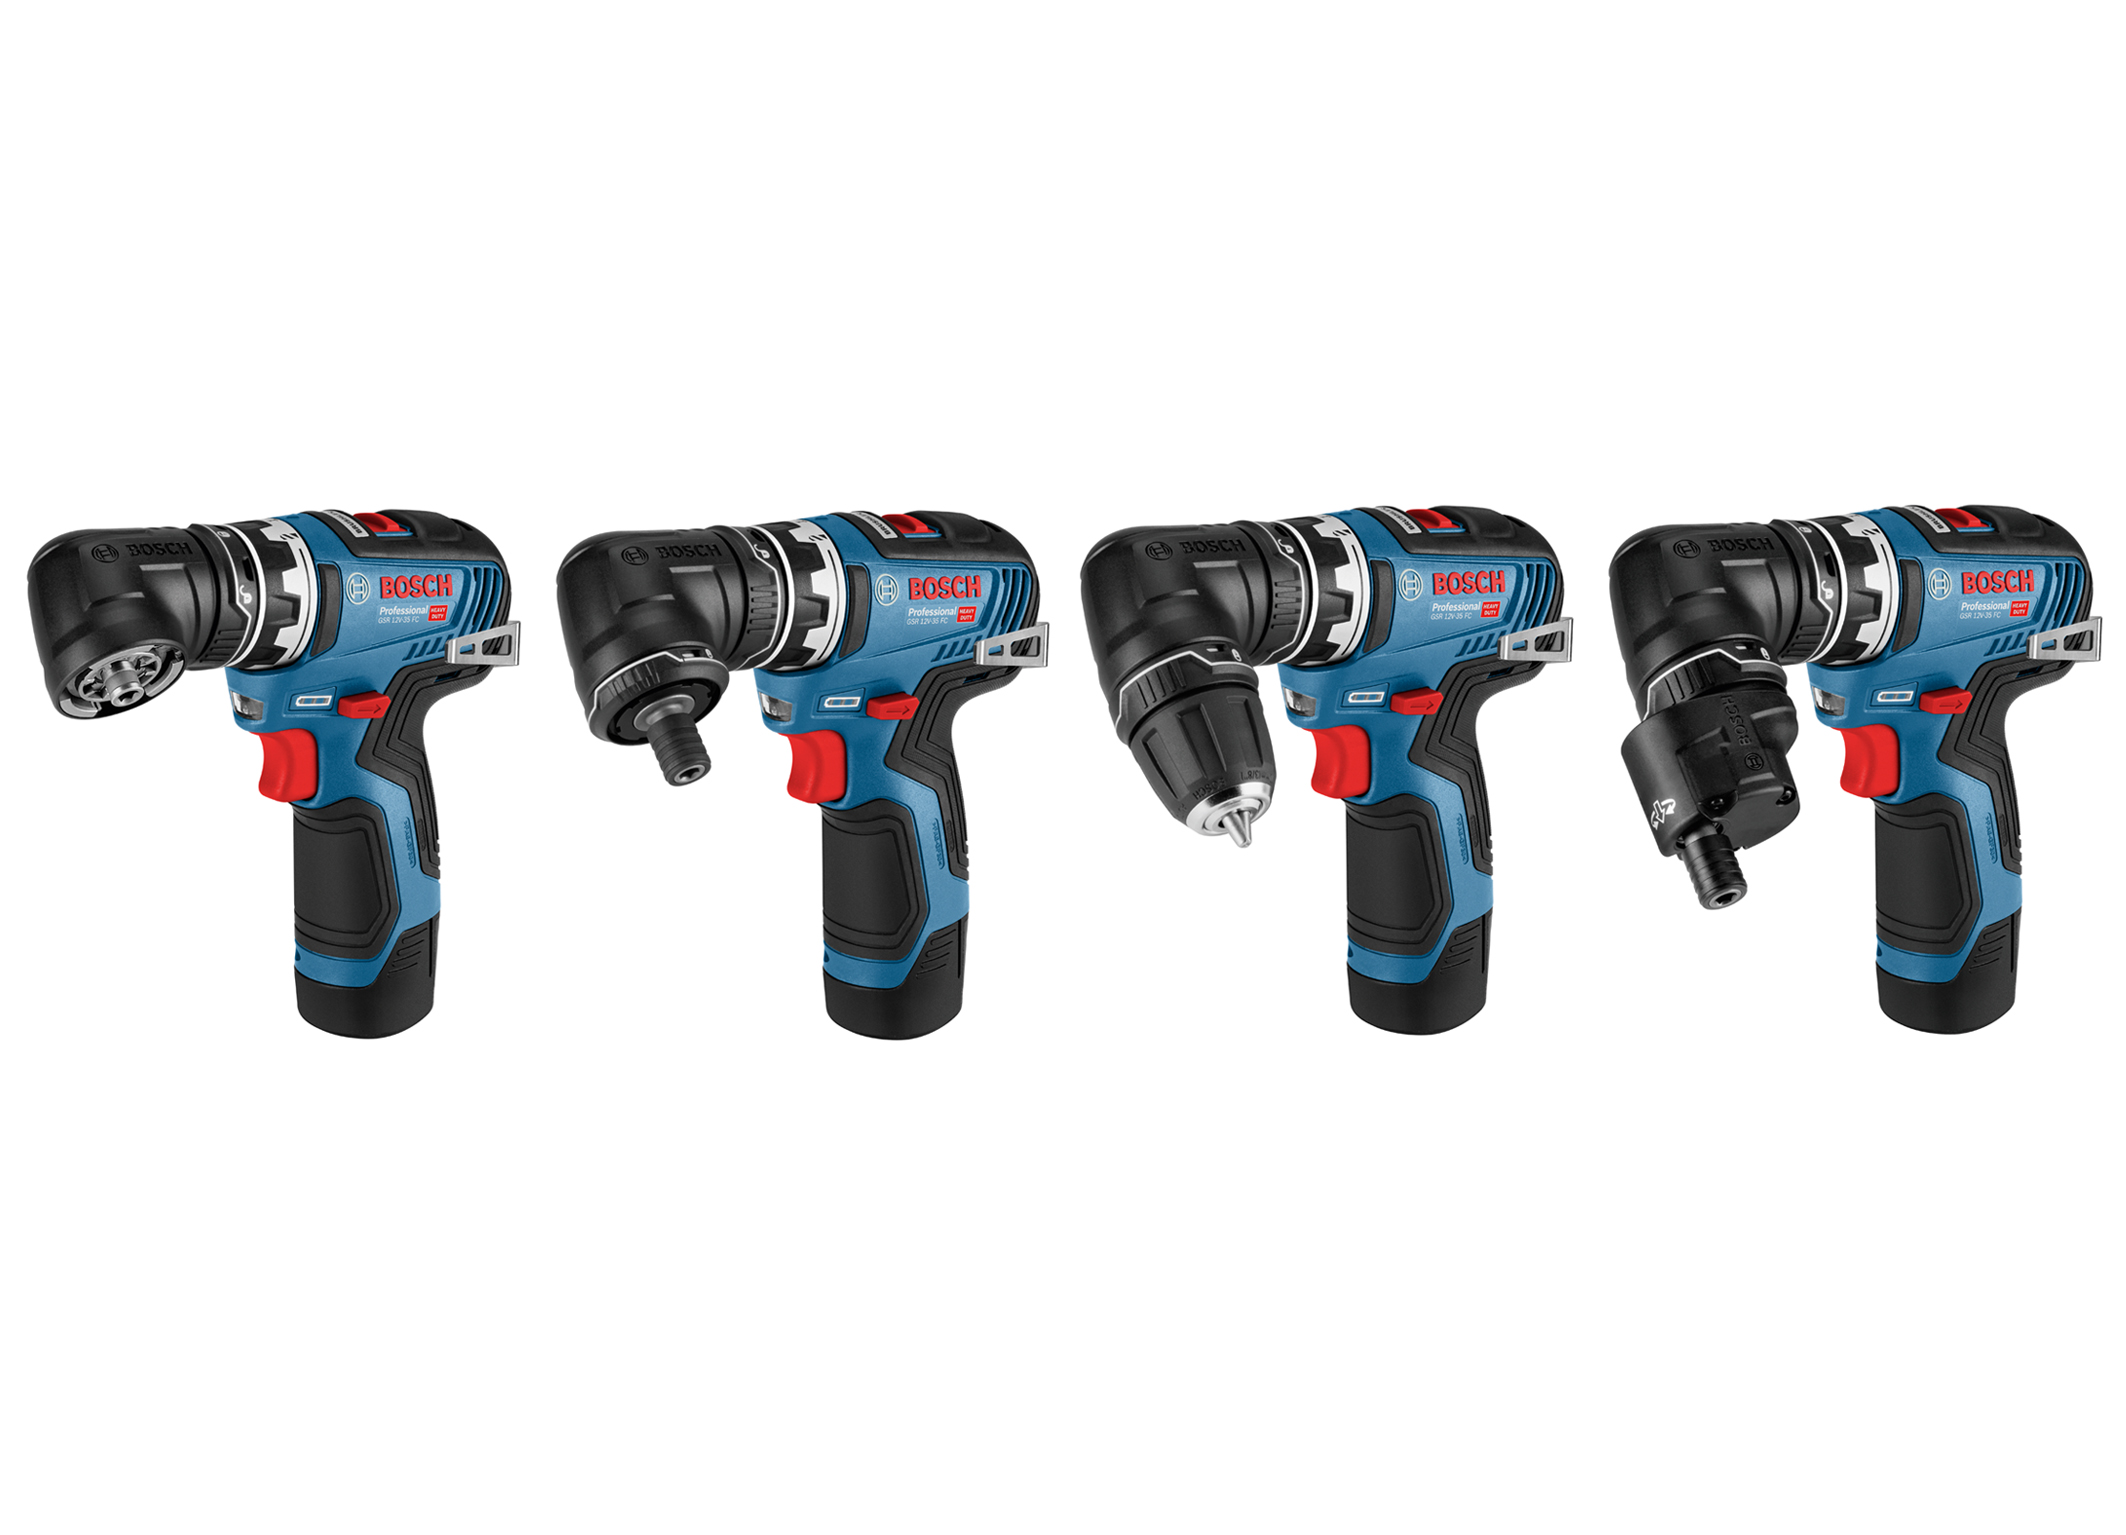 Bosch FlexiClick 12 V offers proven flexibility: Eight possible configurations with four adapters